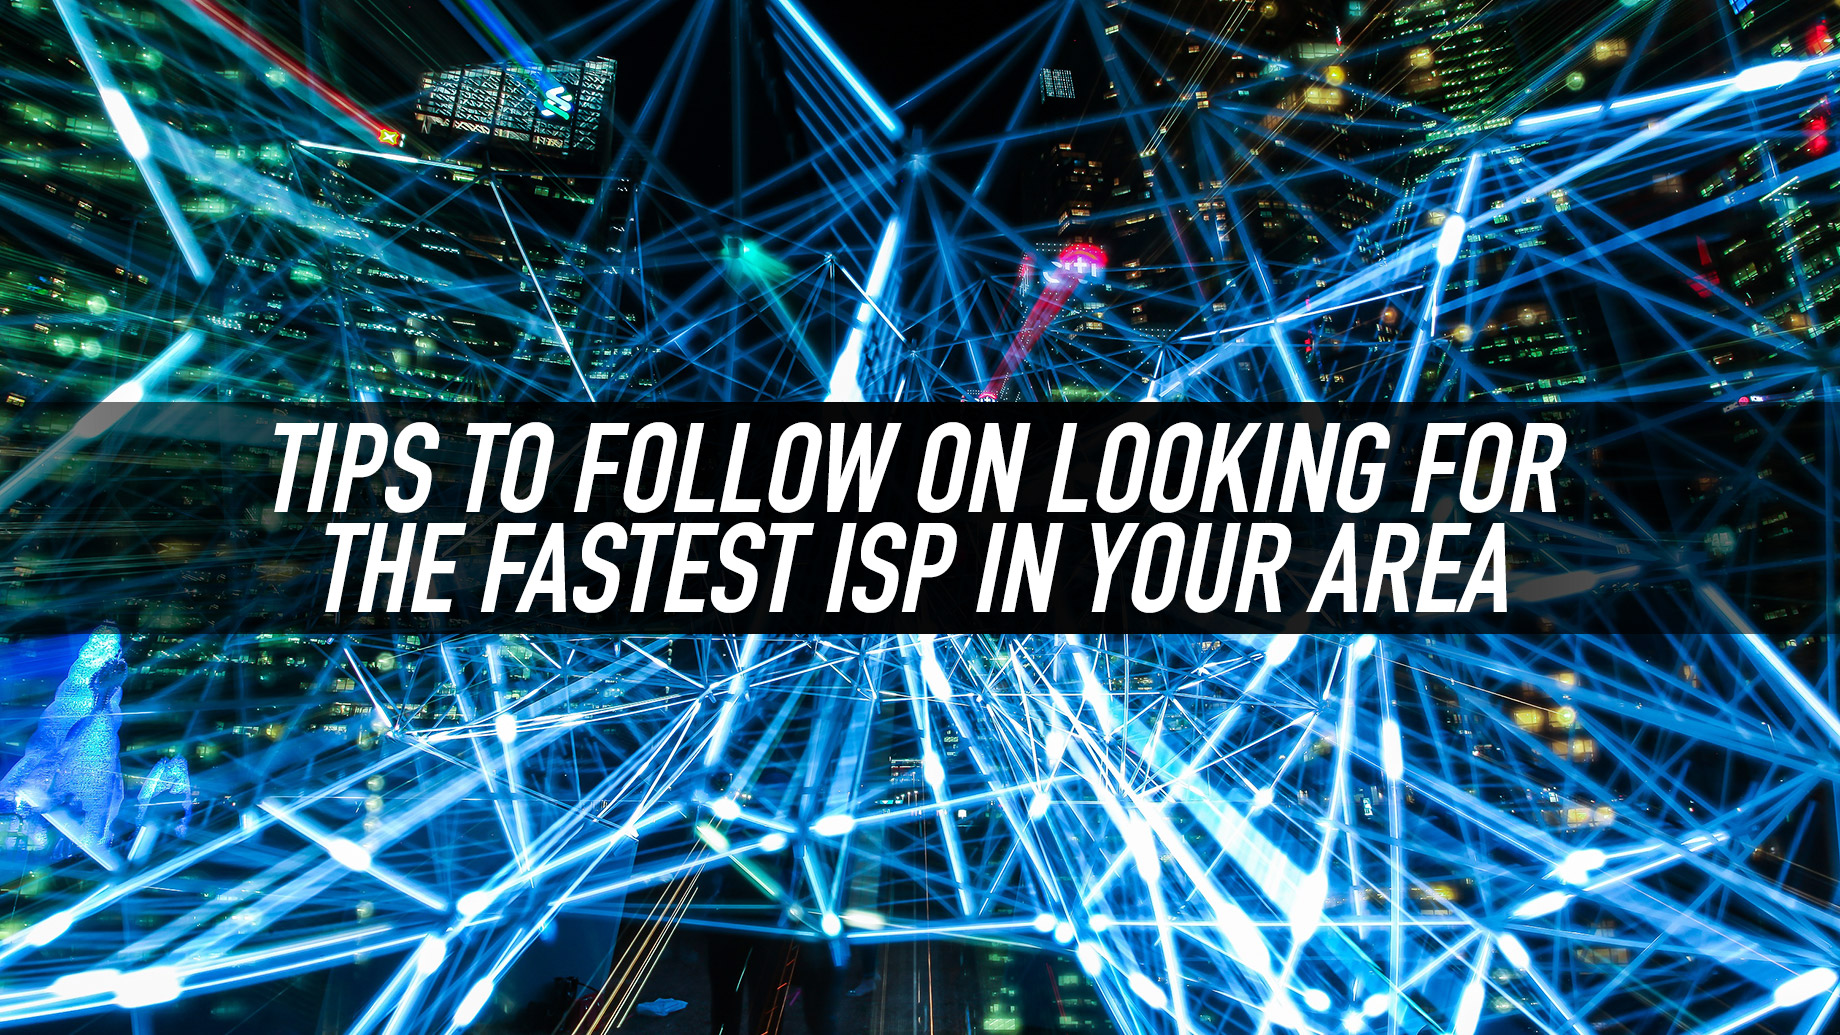 Tips to Follow on Looking for the Fastest ISP in Your Area